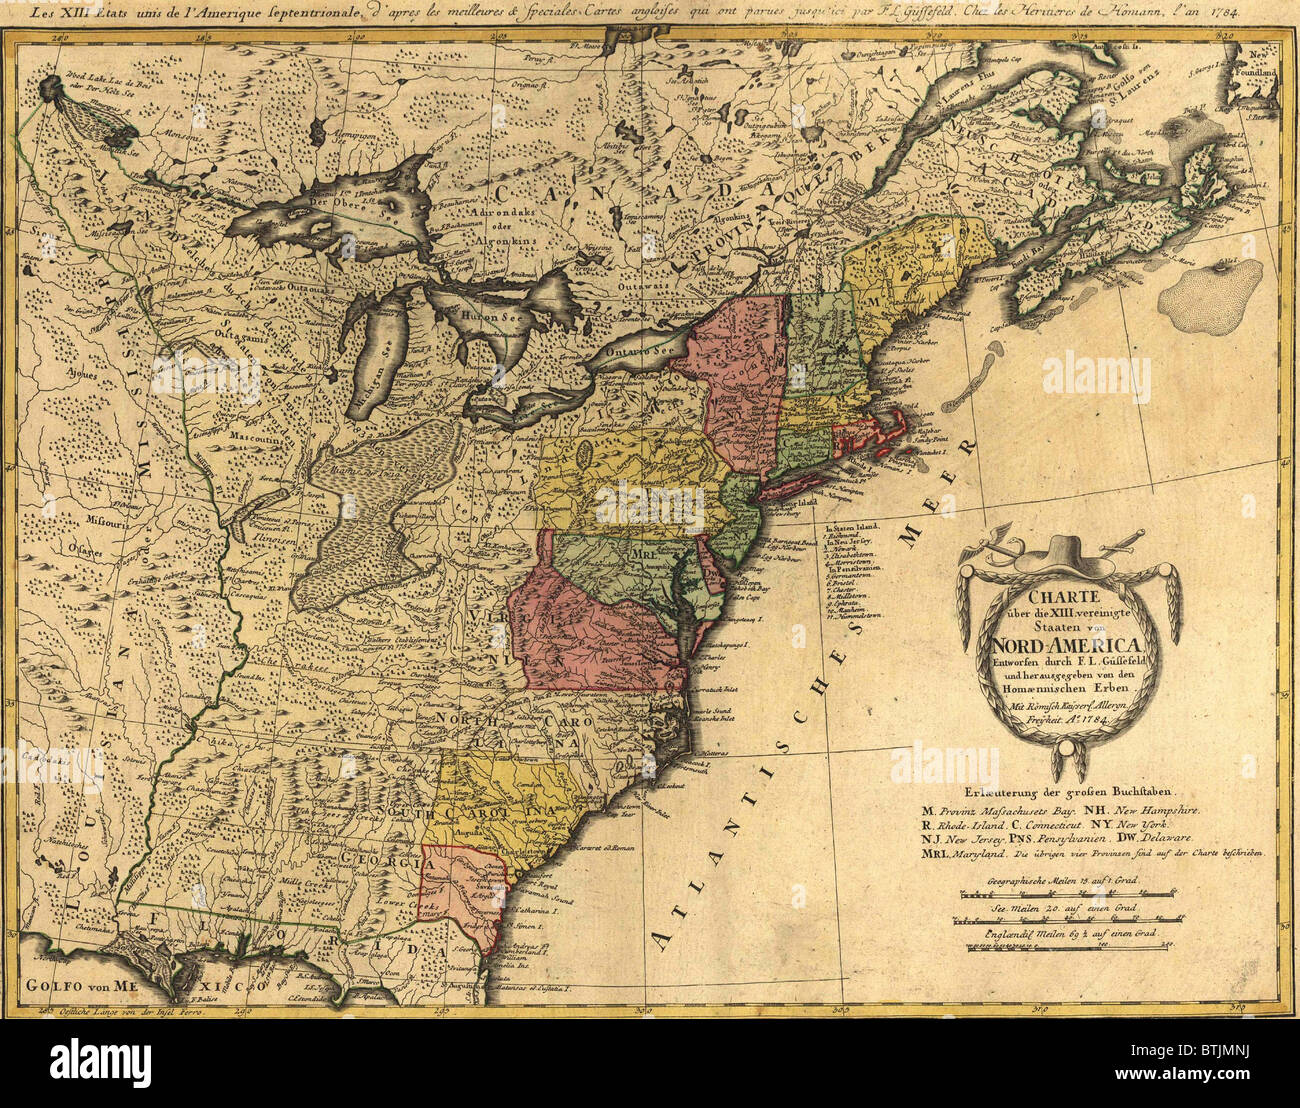 Treaty Of Paris Map 1783.Map Showing The Newly Independent United States In 1784 Following